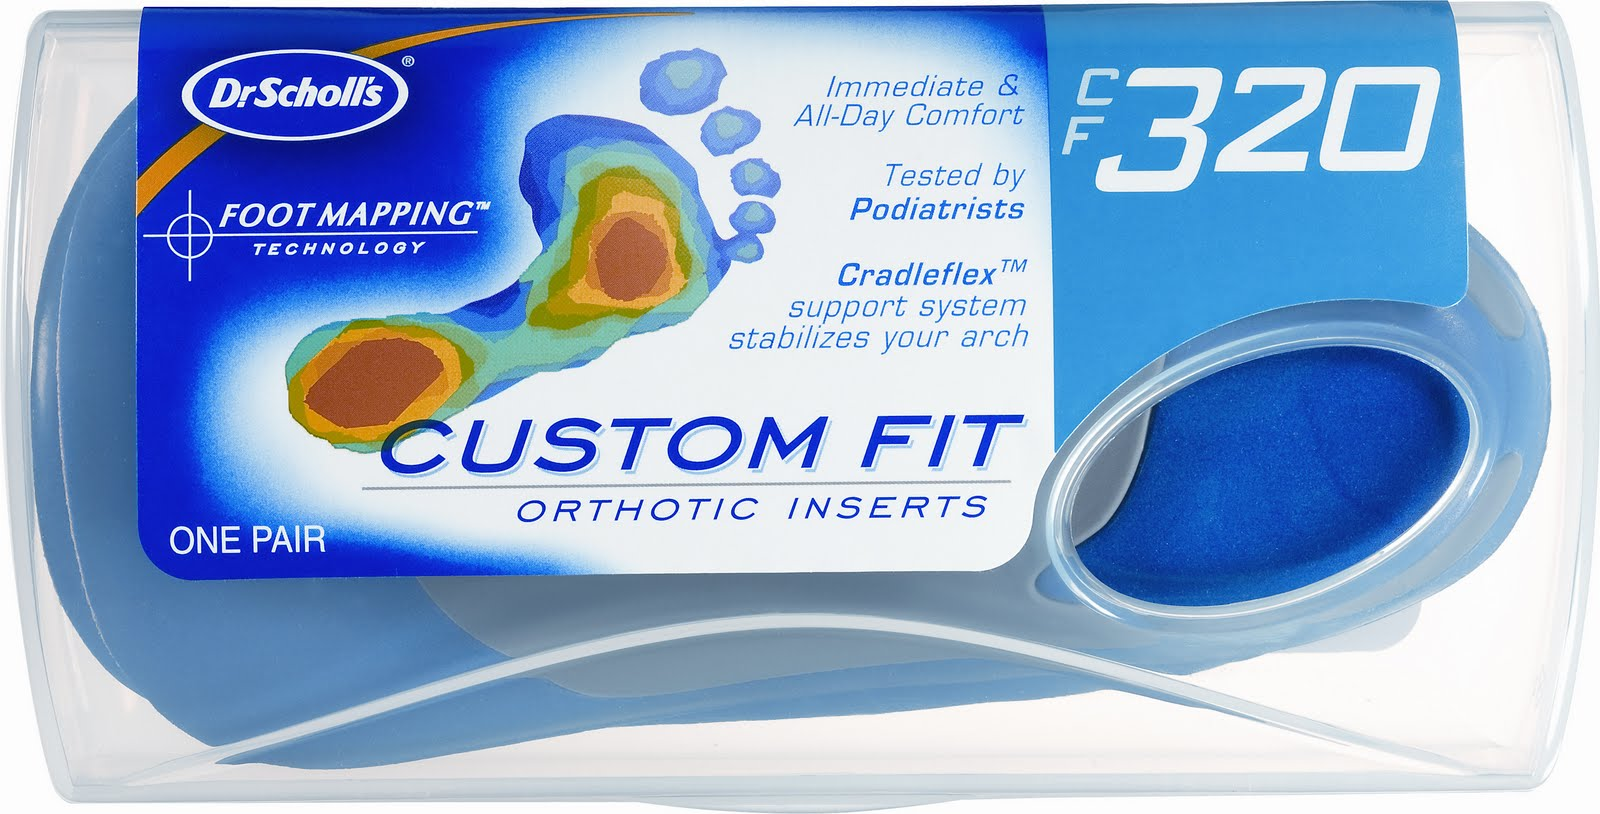 dr scholl custom fit orthotics instructions